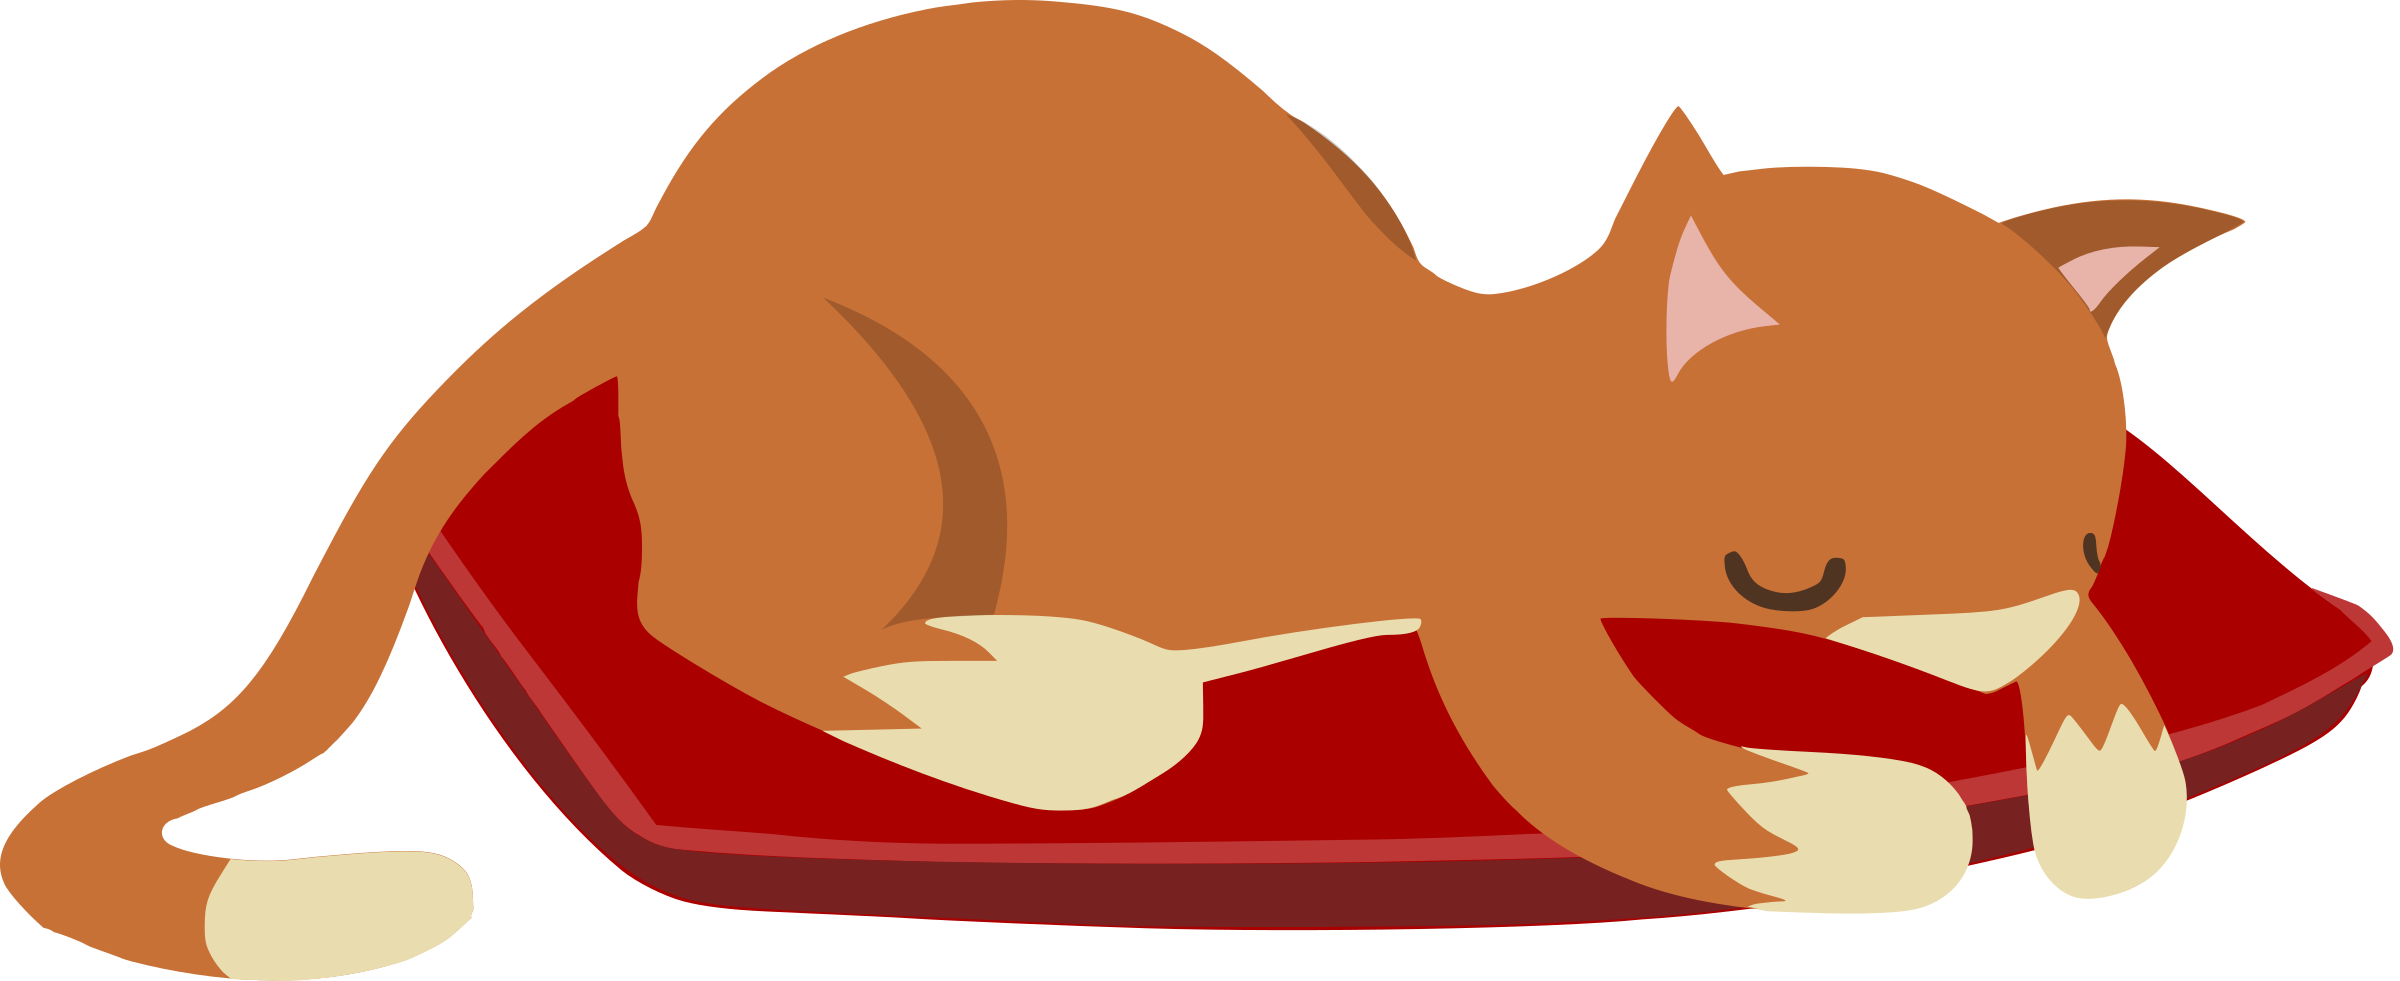 Cat clipart sleeping clip art Clipart - Sleeping cat from Glitch clip art